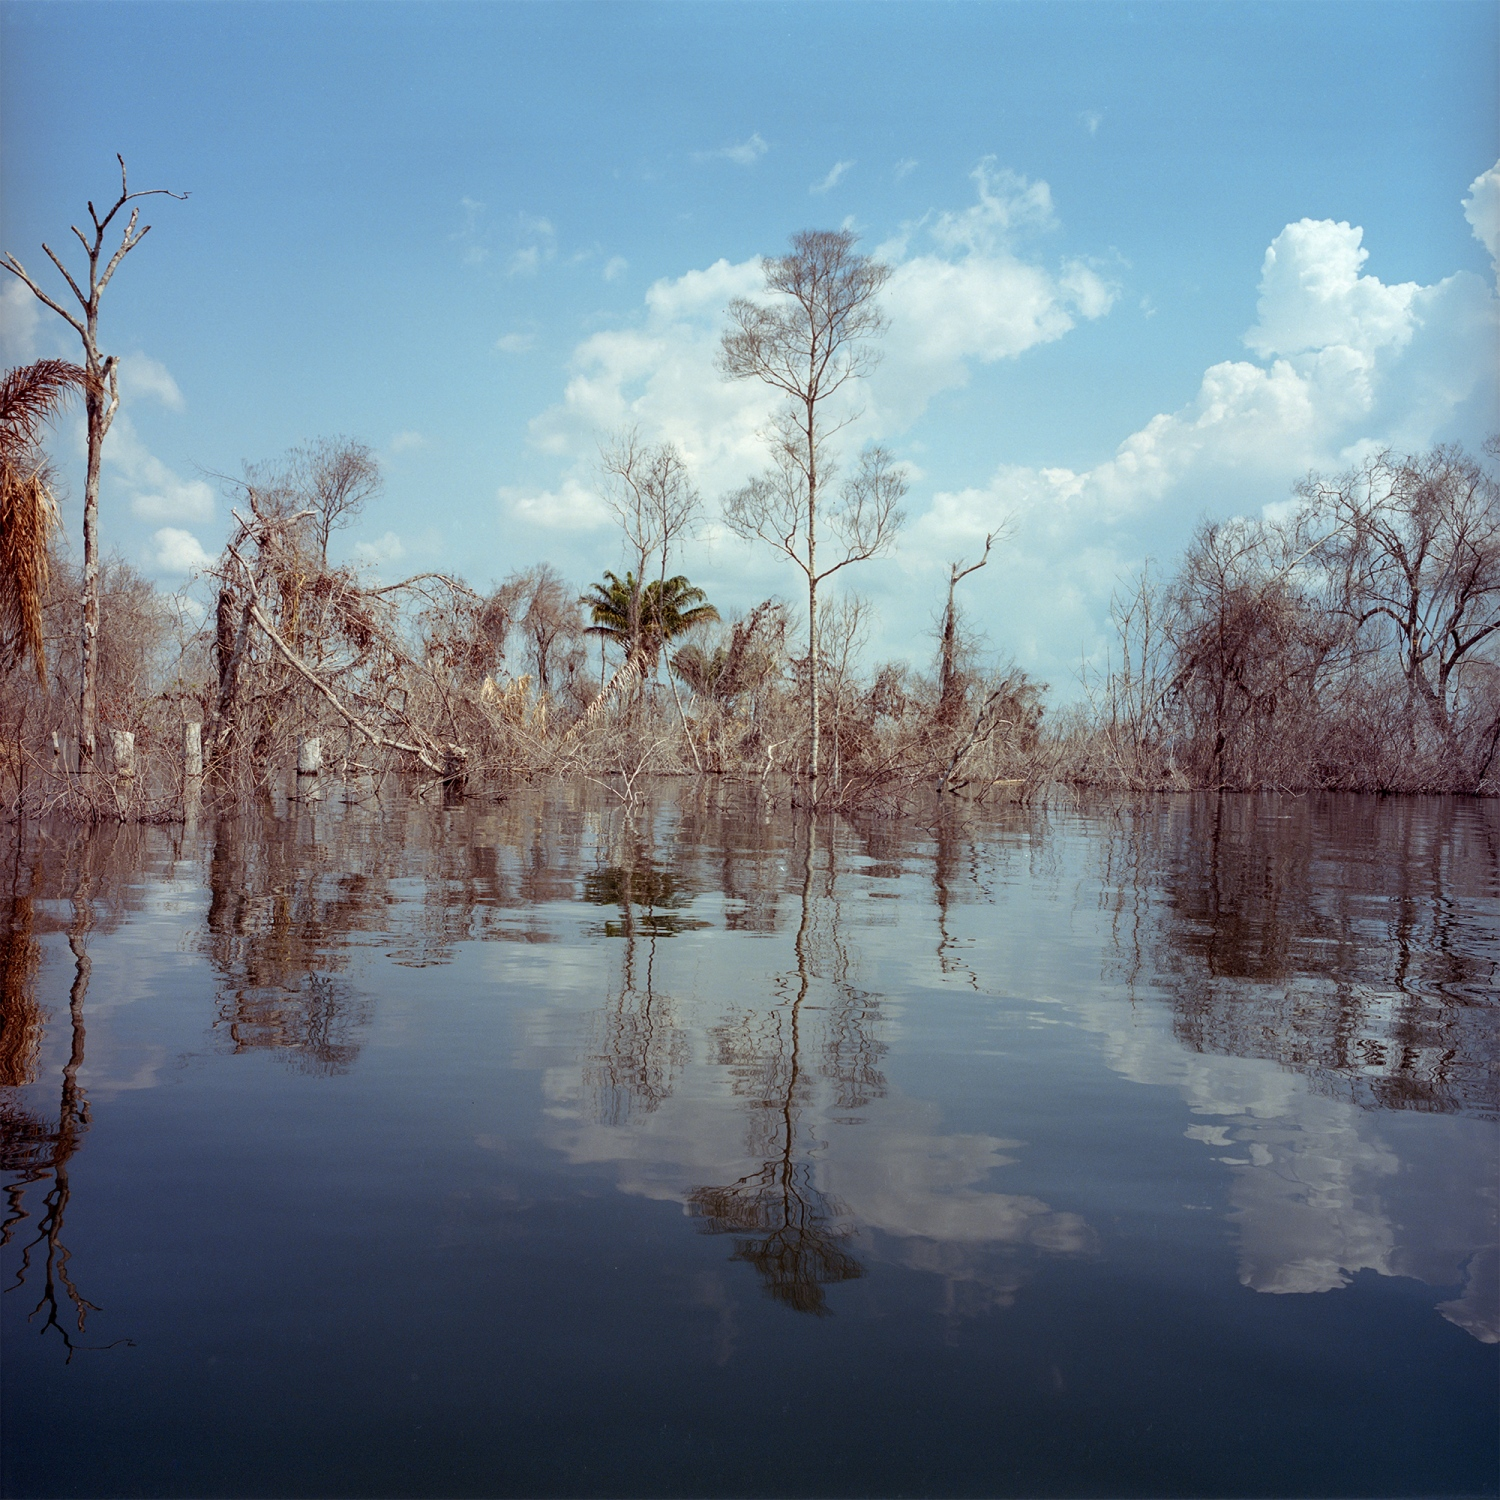 2016. Flooded islands and dead trees on the reservoir of the Belo Monte Dam. Rivernine people were displaced from many of the islands that have now been flooded. The trees were supposed to be cut down prior to flooding to reduce methane emissions, but much was simply left to die and rot.